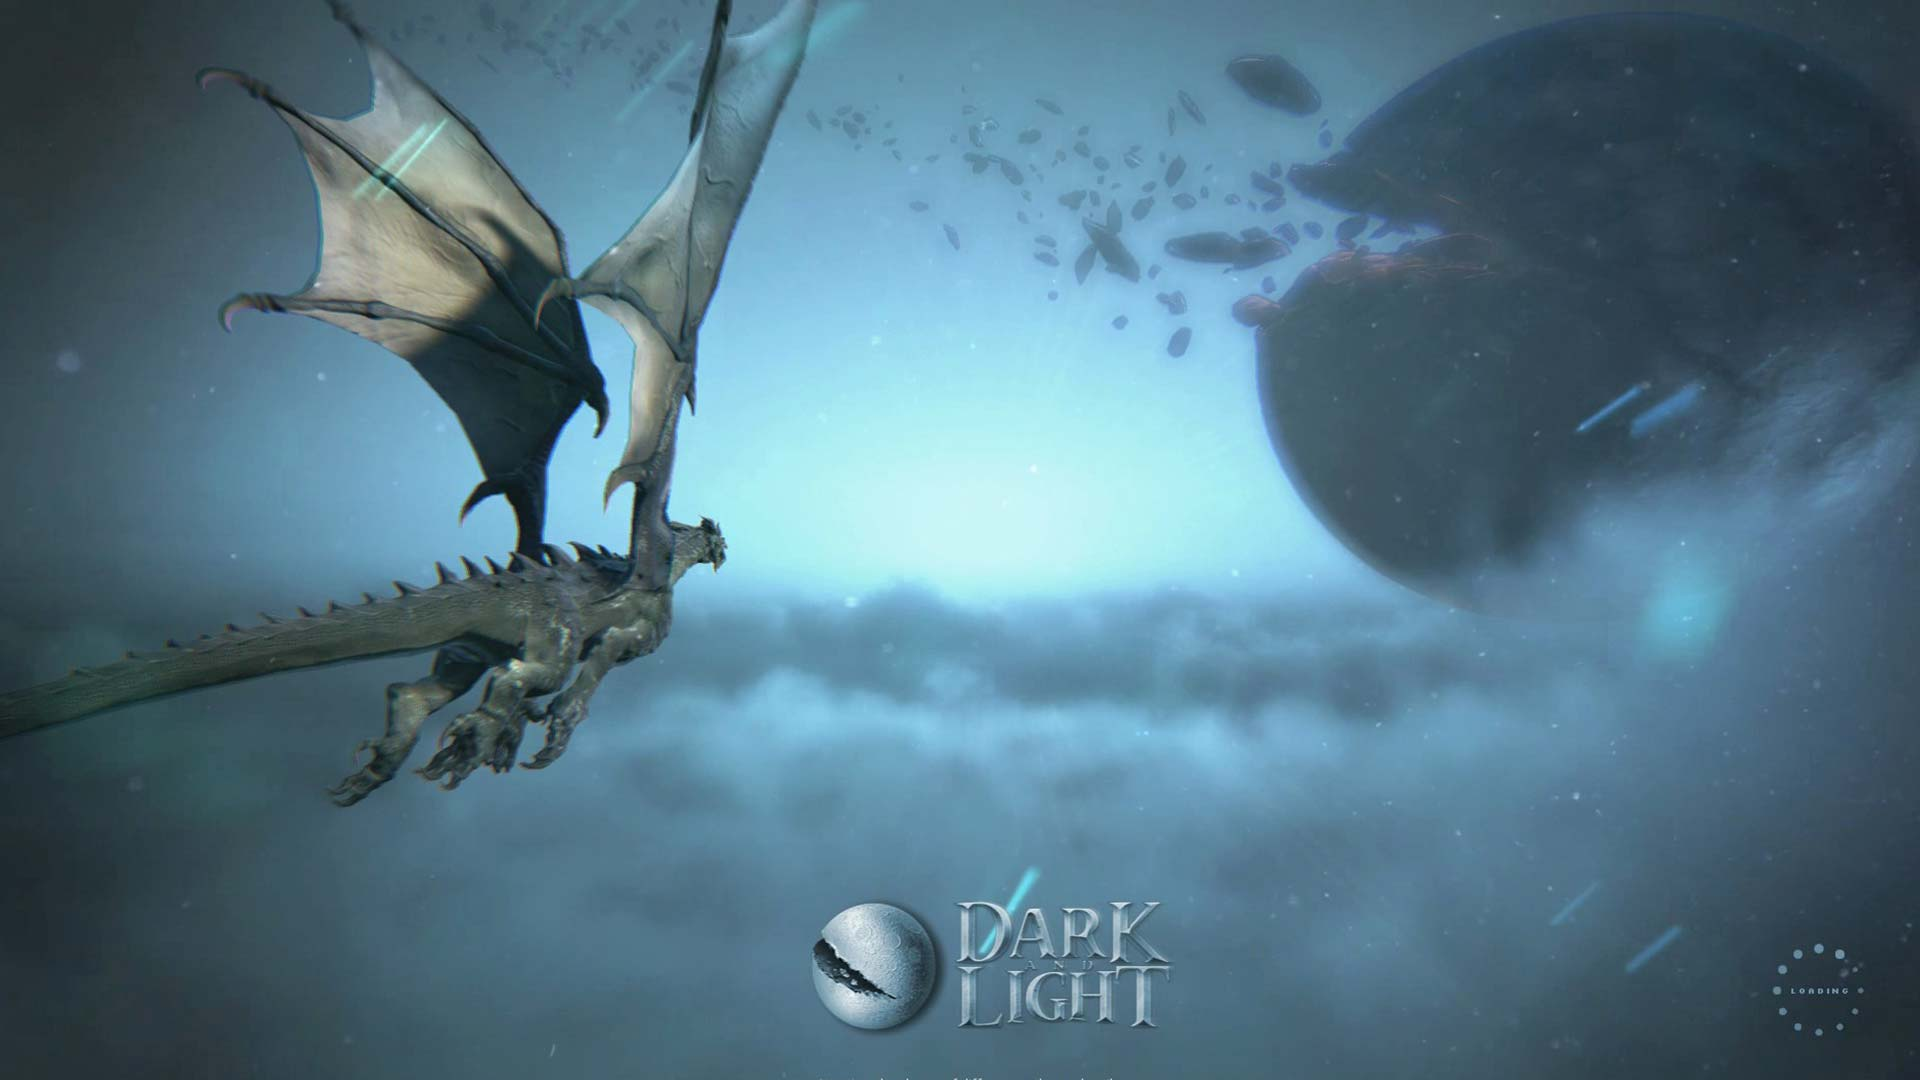 Screenshot Dark and Light mit Drache und Planet Gaia